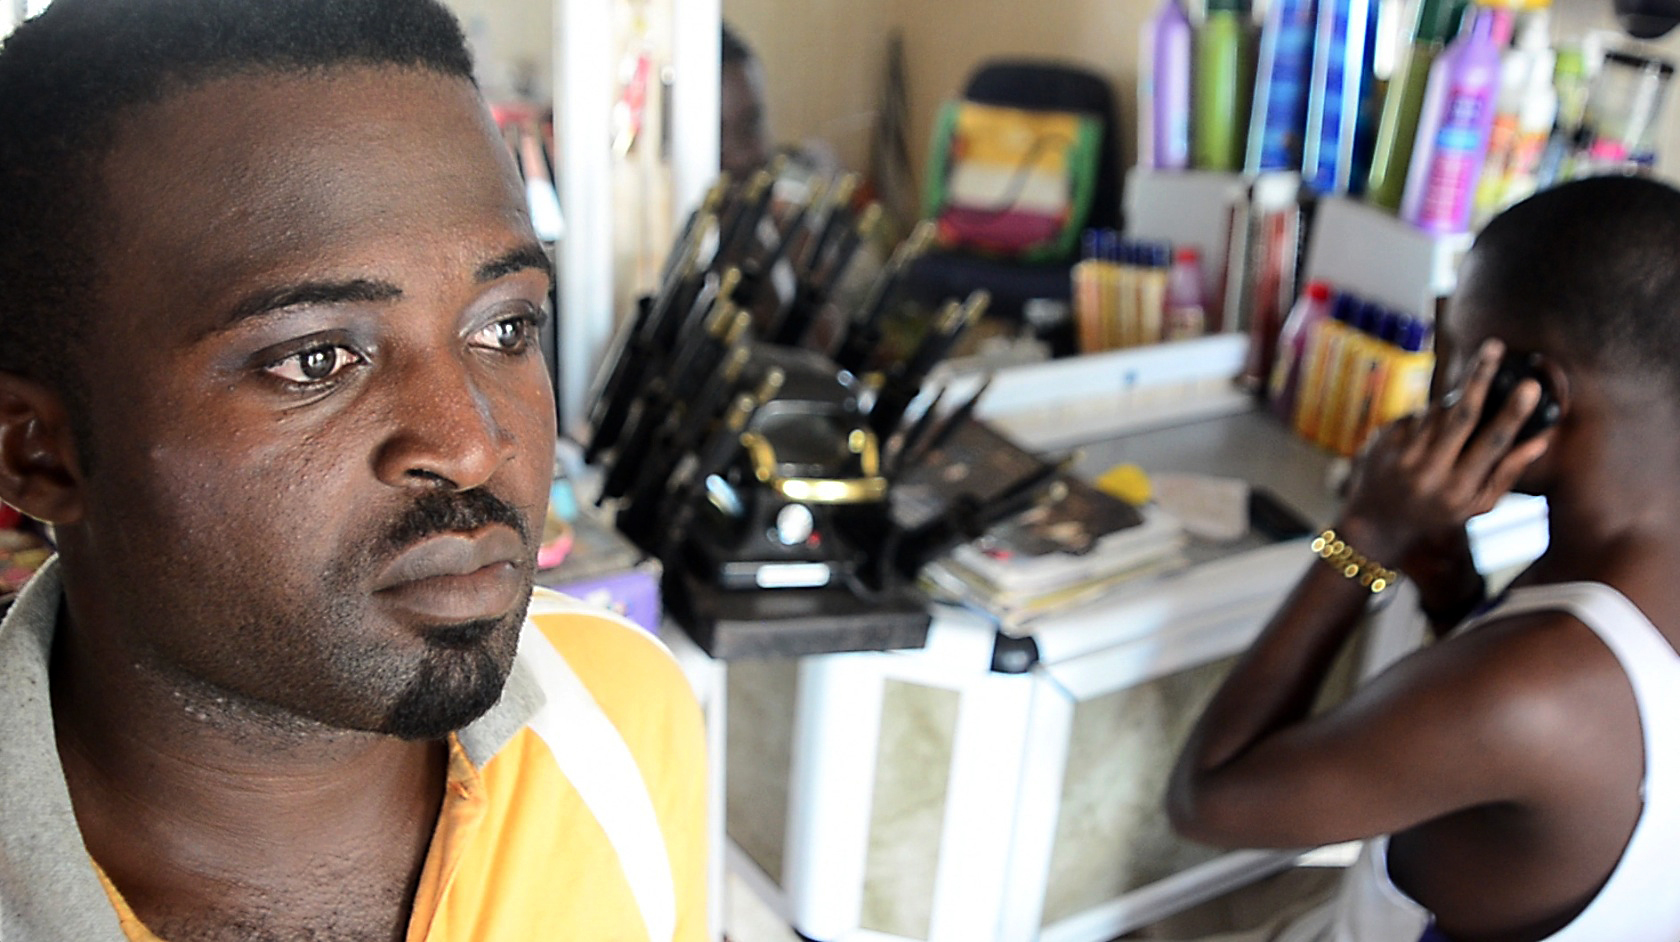 Nana Yaw, a human rights activist an openly gay man, sits with his friend in his sister's hair salon in Accra, Ghana on March 21, 2013.